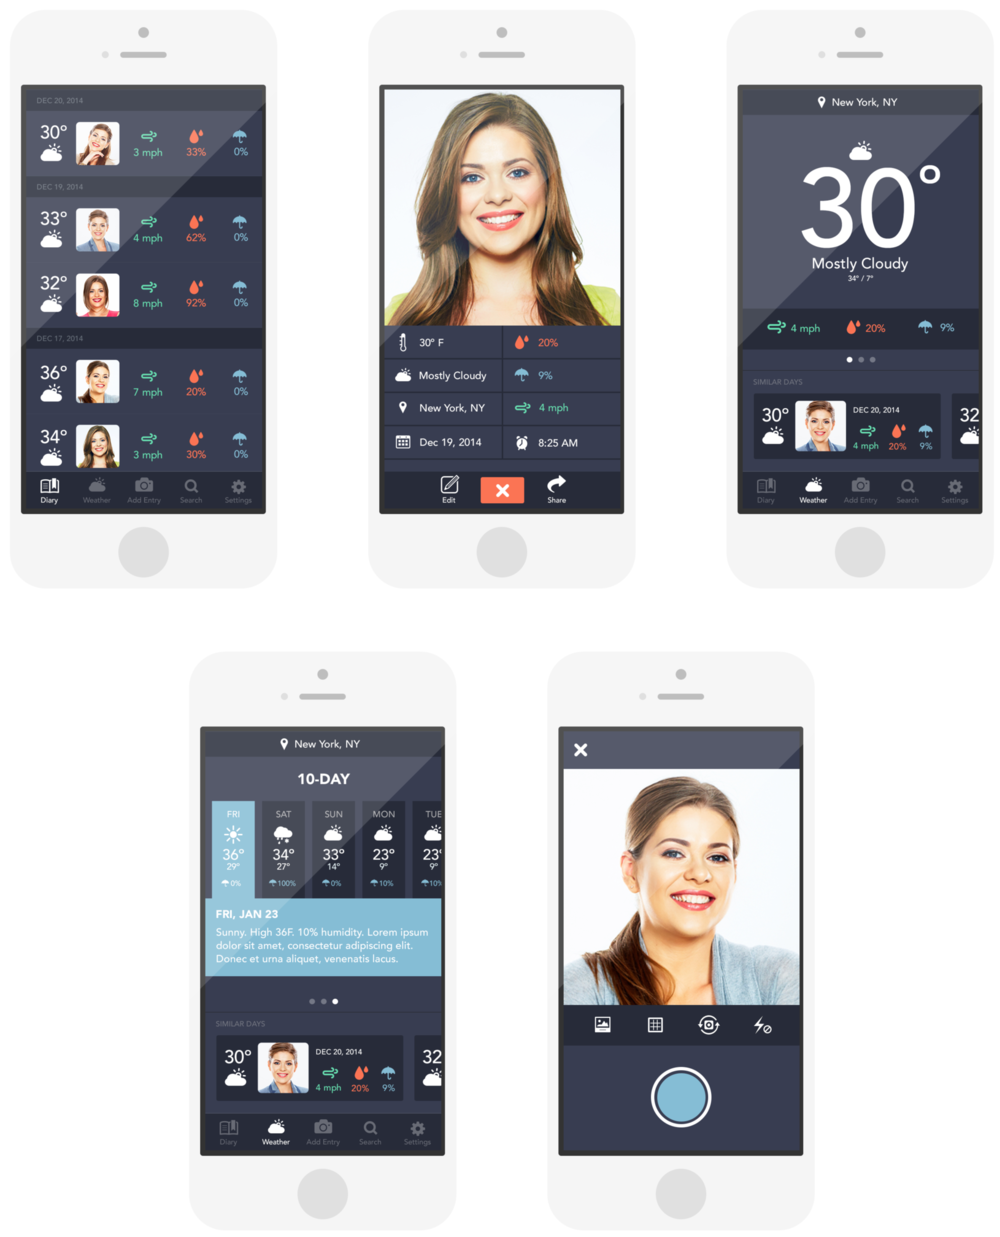 WeatherBrush - I did the UX, UI,and branding for WeatherBrush,which is an app that helps you style your hair based on the weather. Each time you add a selfie, the app pulls in the current weather. By creating a personalized diary of your best and worst hair days, WeatherBrush prepares you by showing you how your hair looked on days with similar weather.